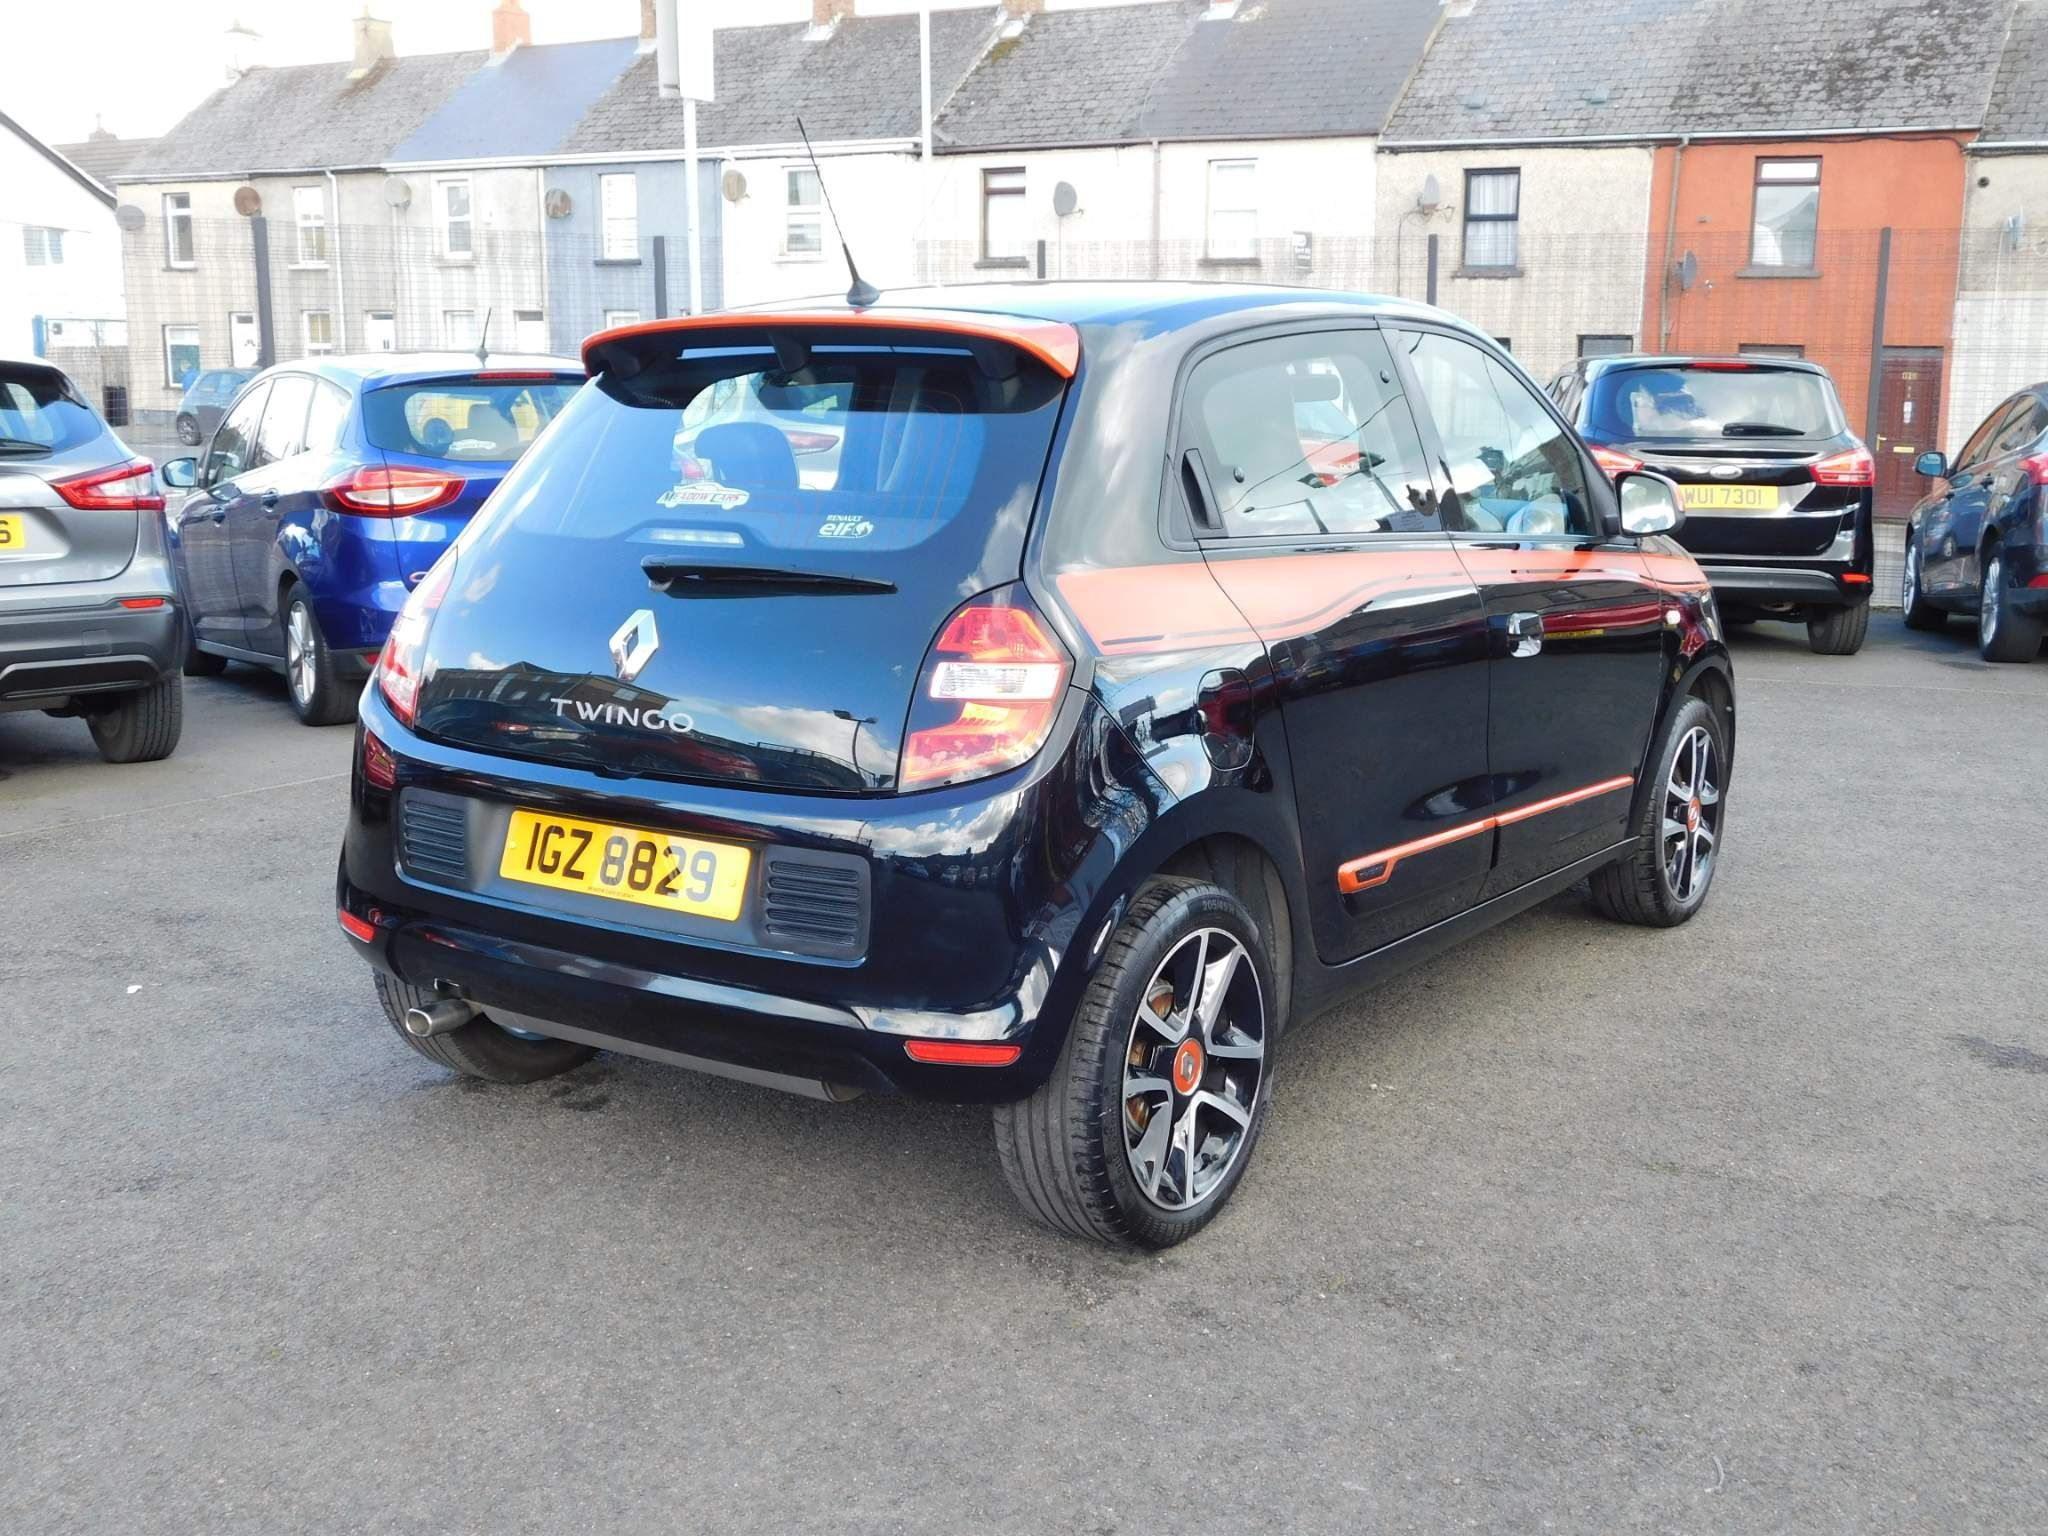 2018 RENAULT Twingo 1.0 SCe Dynamique S (s/s) Petrol Manual just arrived – Meadow Cars Carrickfergus full